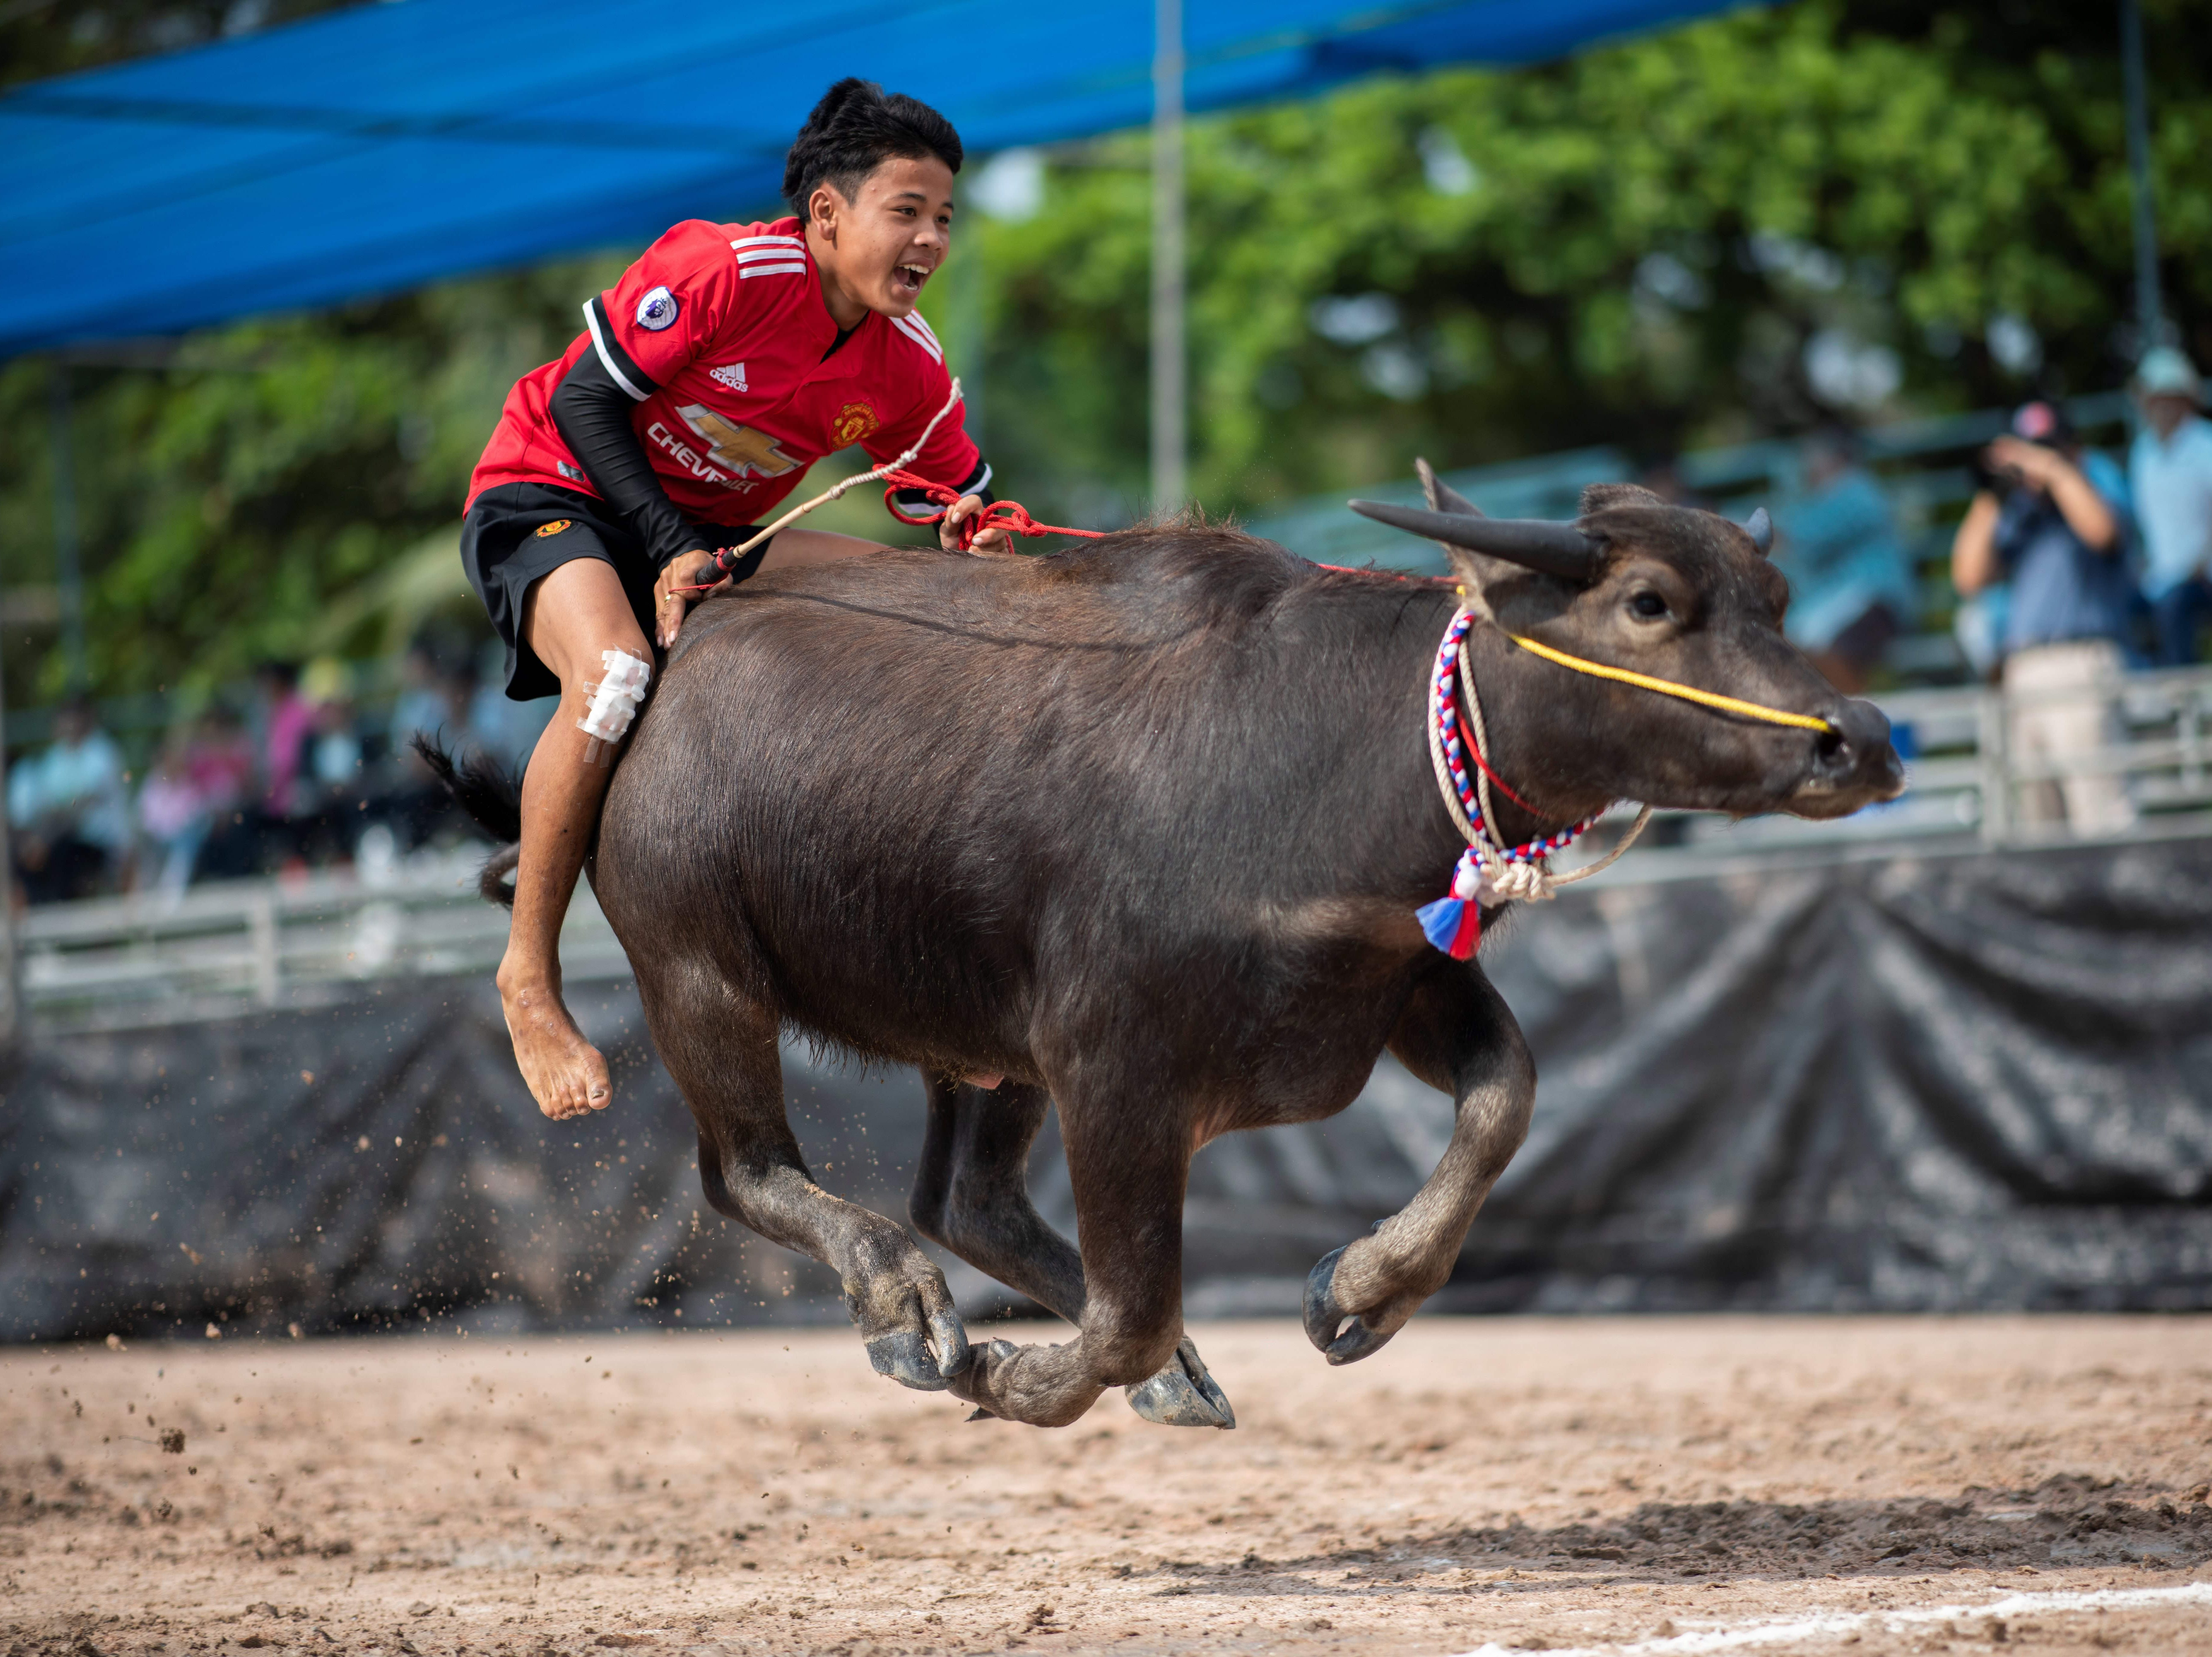 A jockey rides a buffalo during the annual races in Chon Buri on Oct. 23, 2018. Several hefty buffaloes thunder down a dirt track in eastern Thailand, kicking up dust as they are urged toward the finish line by whip-wielding riders.